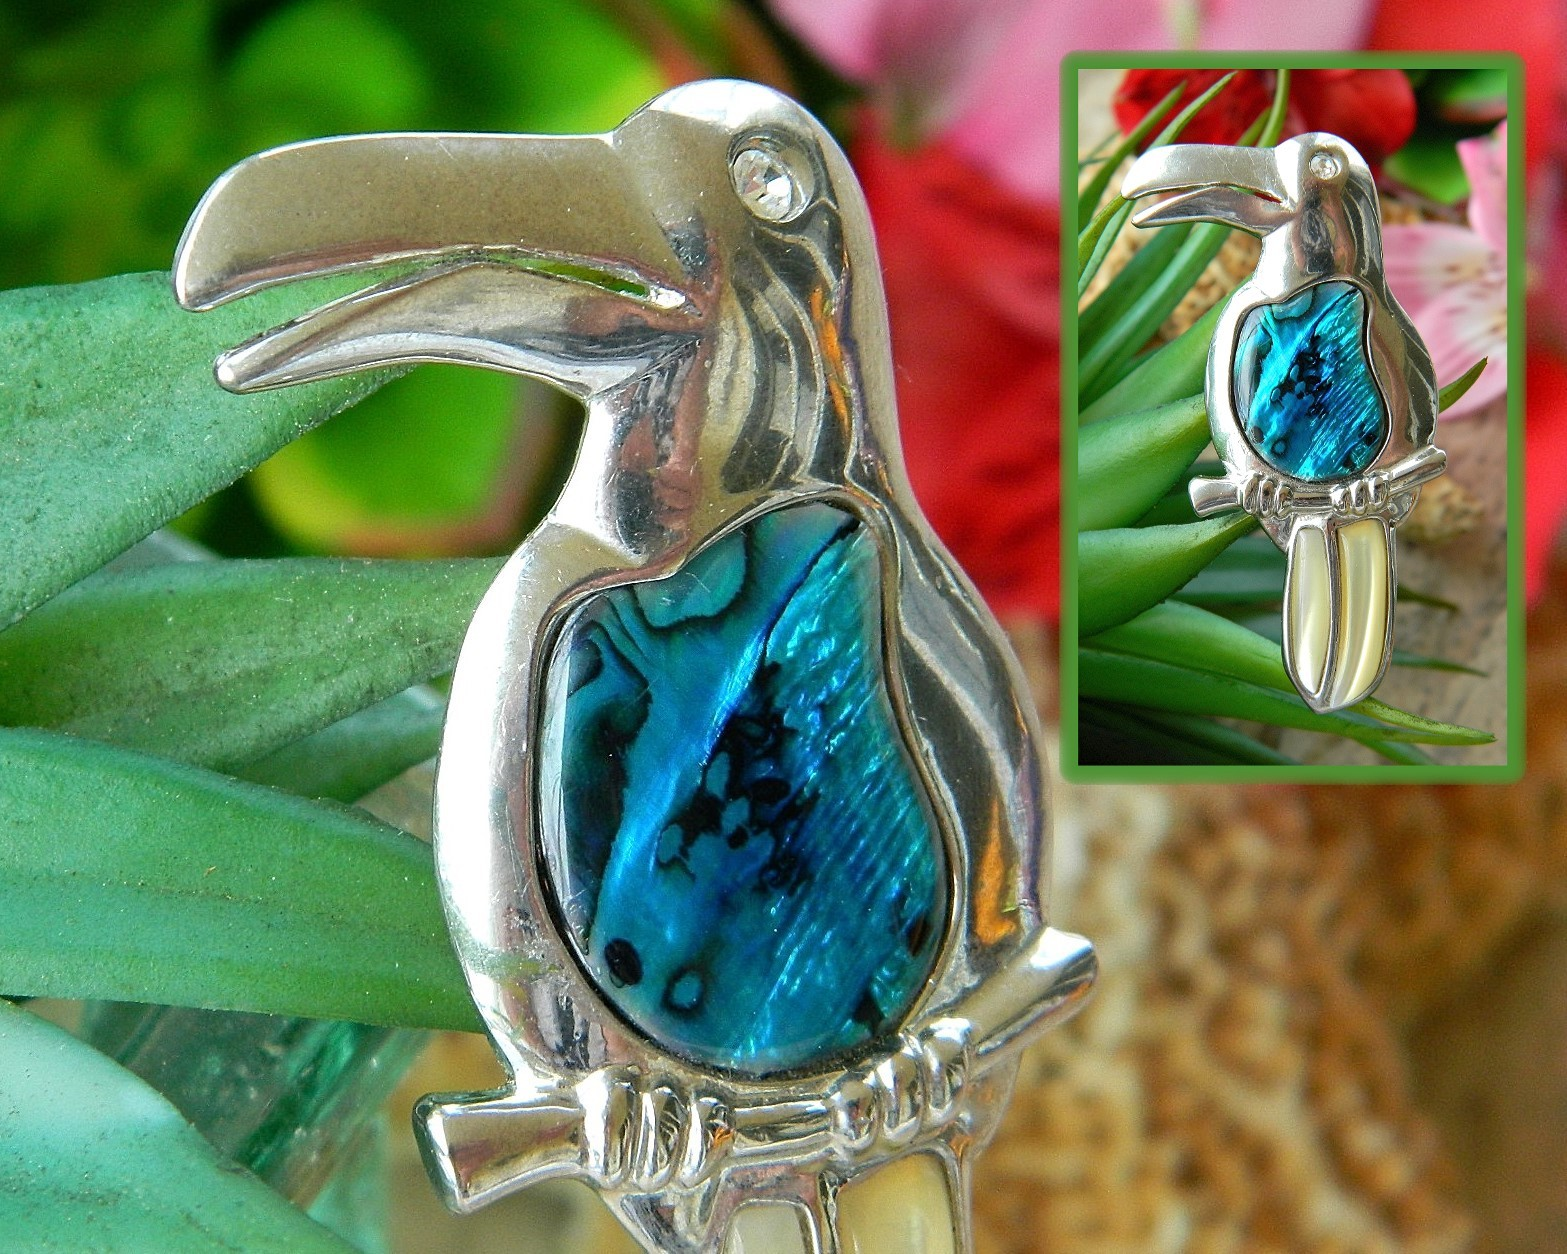 Vintage Toucan Tropical Bird Brooch Pin Abalone Jelly Belly Figural